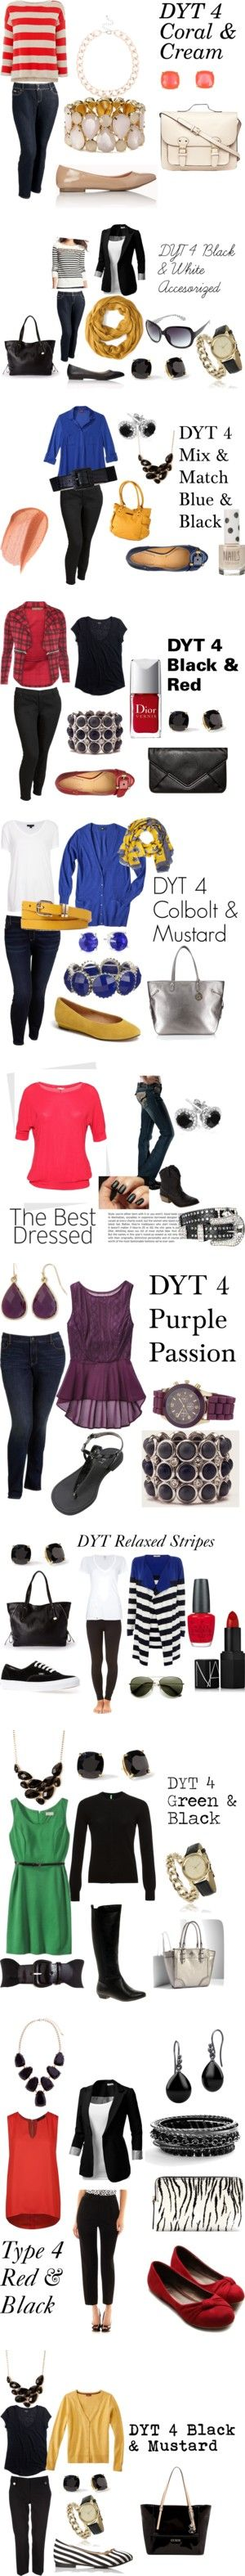 Dressing Your Truth Type 4 by kljs621 on Polyvore featuring moda, Old Navy, Kate Spade, R.J. Graziano, Warehouse, Dorothy Perkins, Forever 21, LOFT, J.TOMSON and 2b bebe